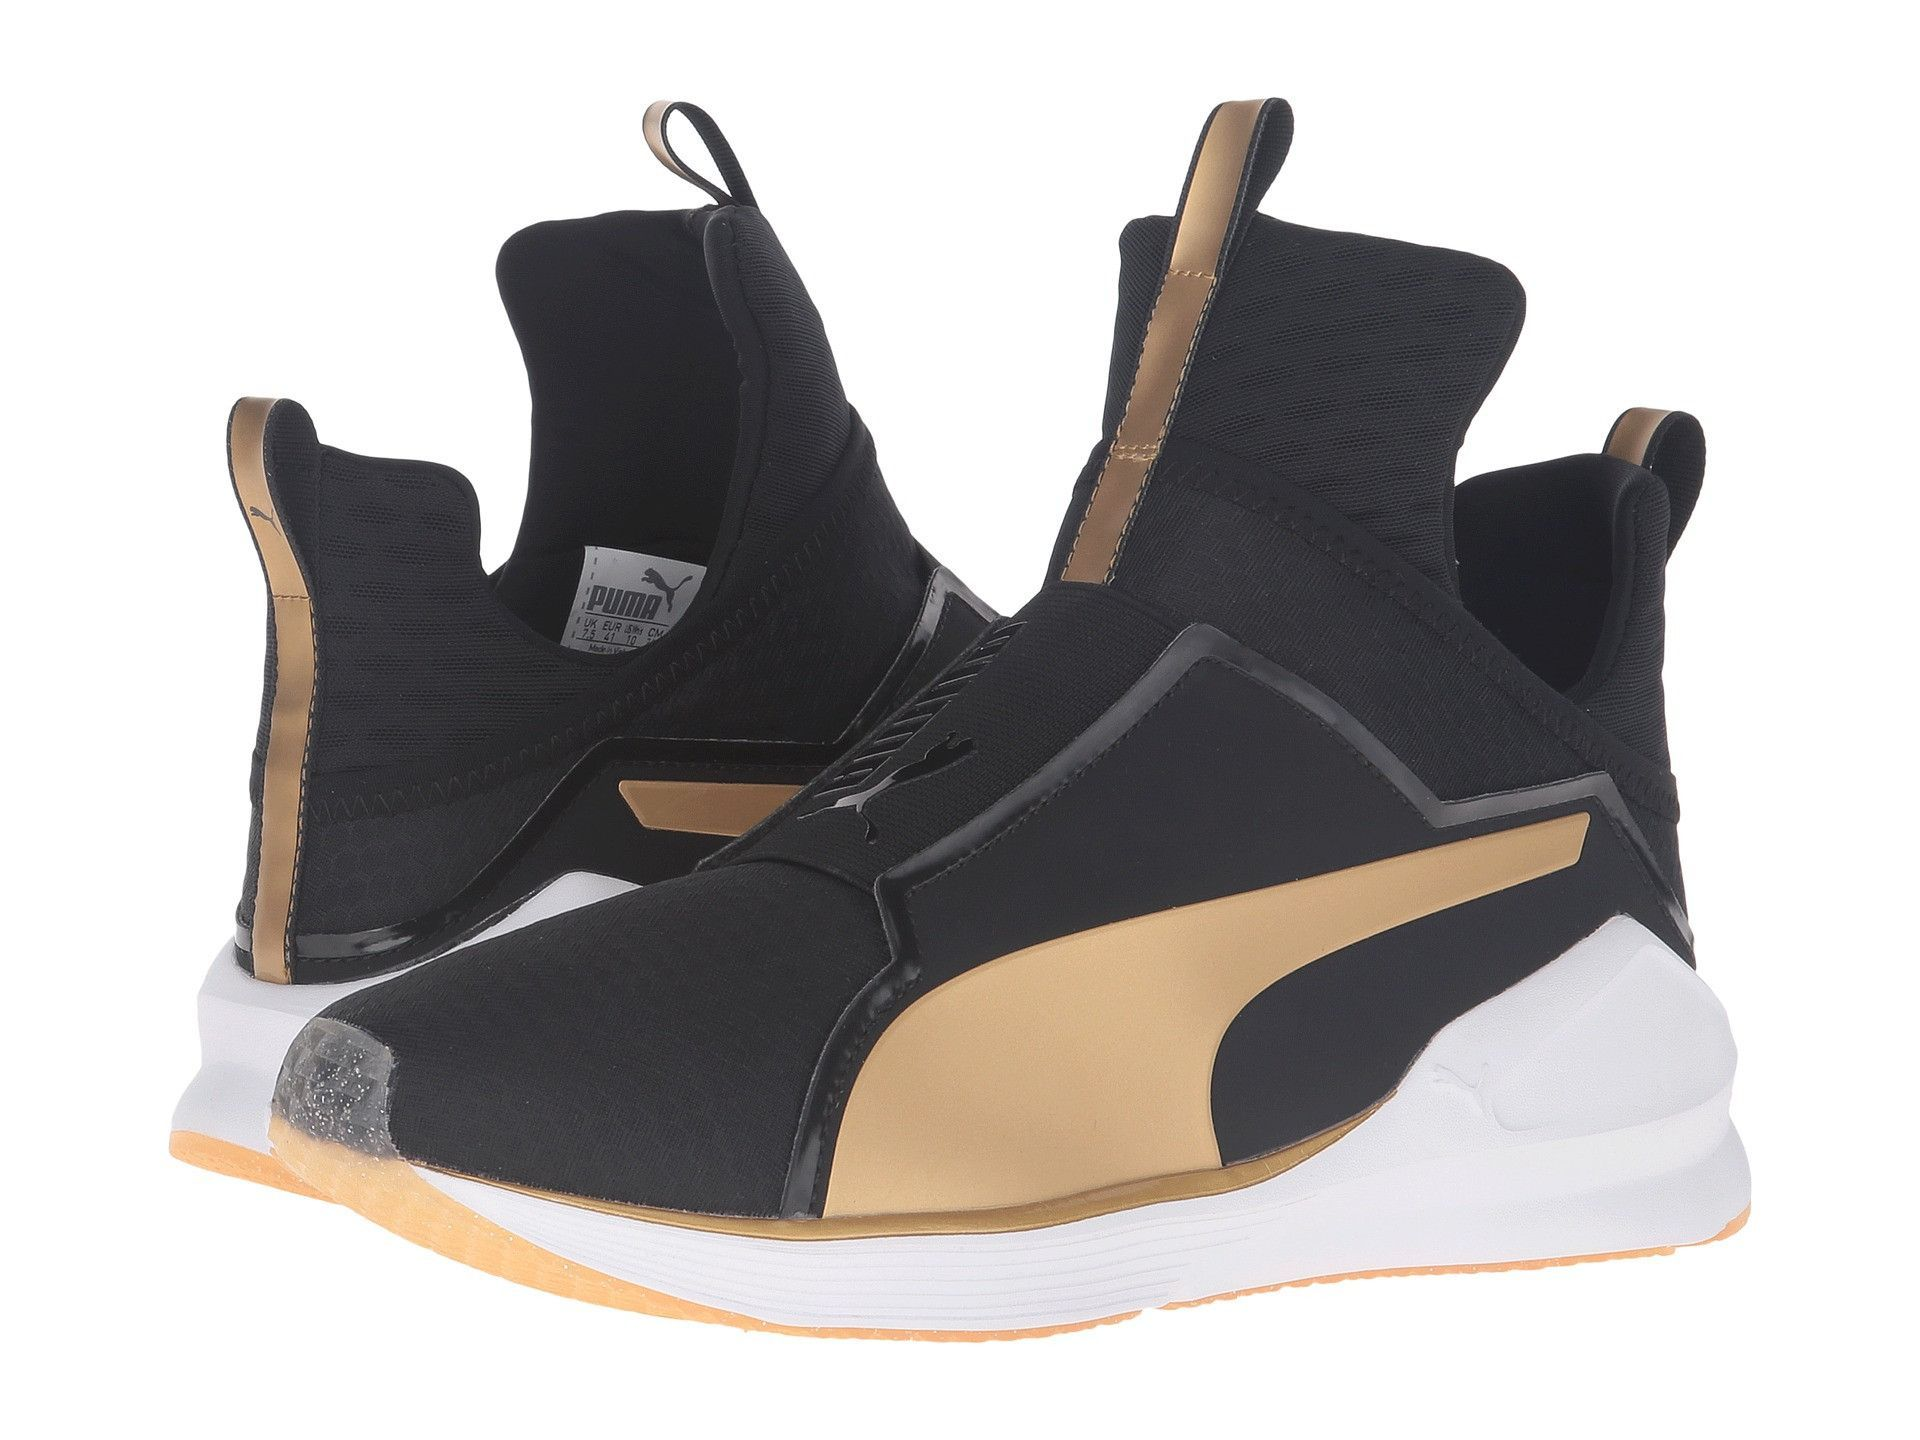 PUMA Fierce Gold Women | BlackGold (189192 02) | Black